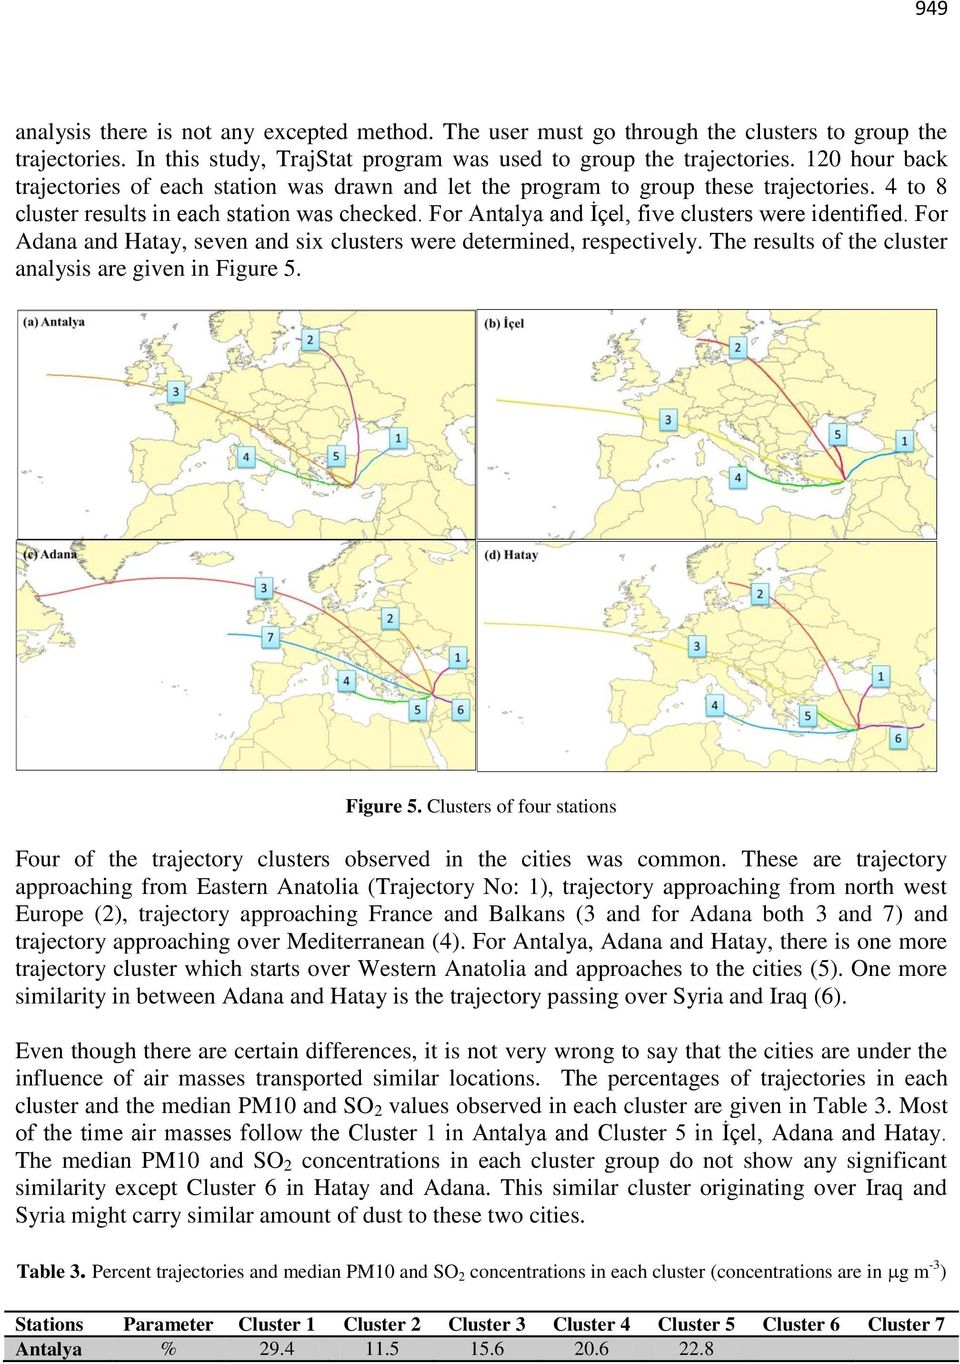 For Antalya and İçel, five clusters were identified. For Adana and Hatay, seven and six clusters were determined, respectively. The results of the cluster analysis are given in Figure 5.